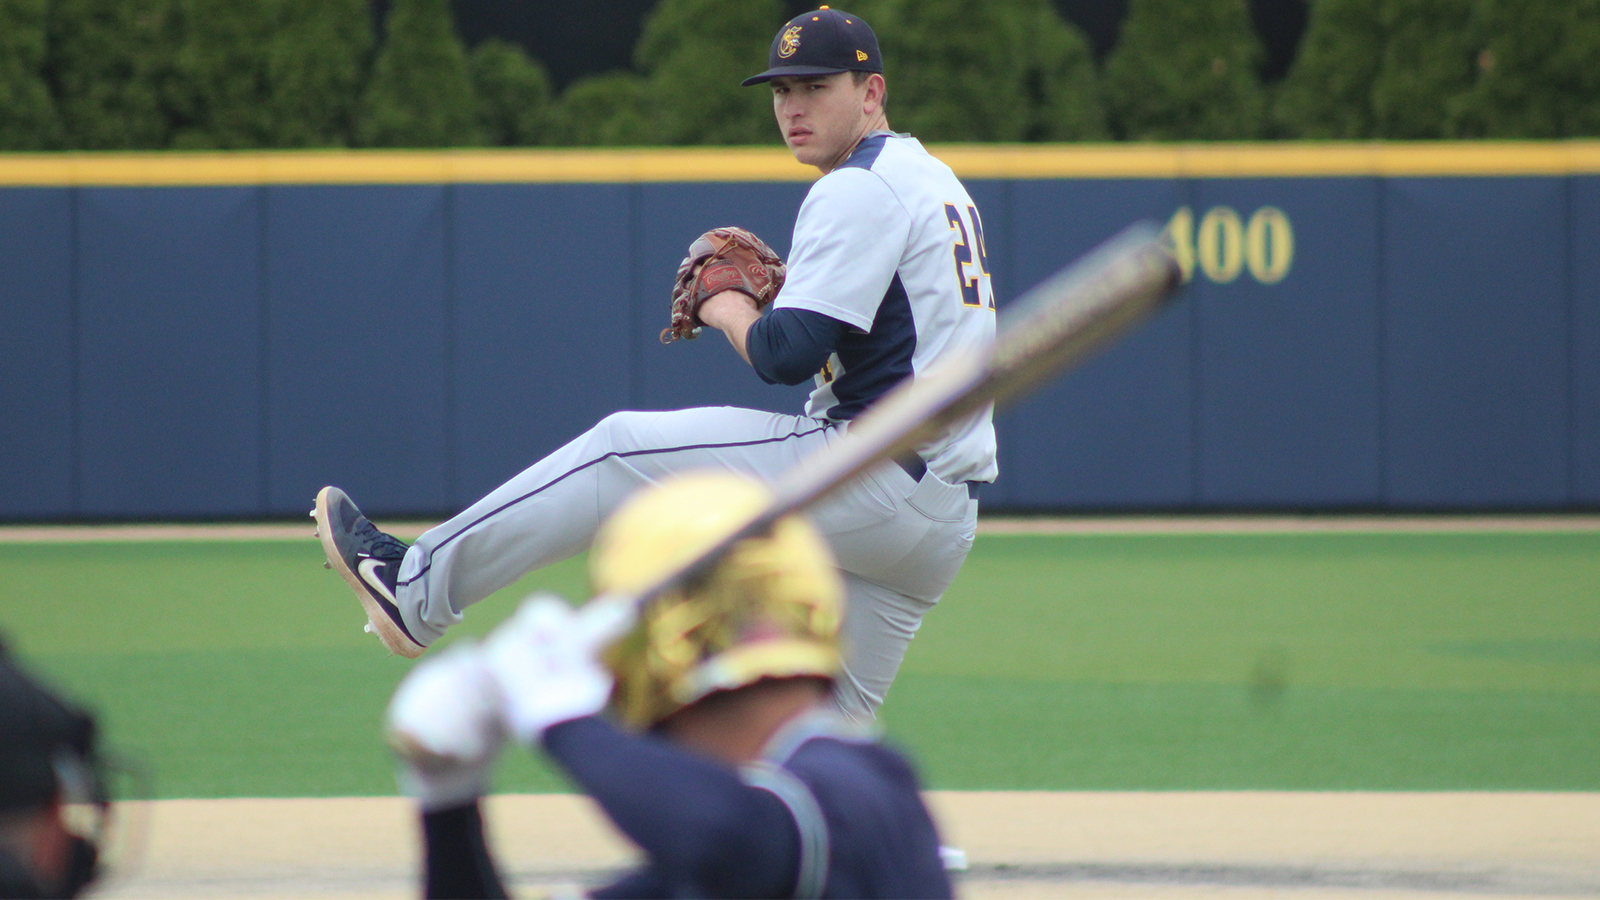 new concept 60949 1cba7 Baseball Falls Twice to Notre Dame - Canisius College Athletics